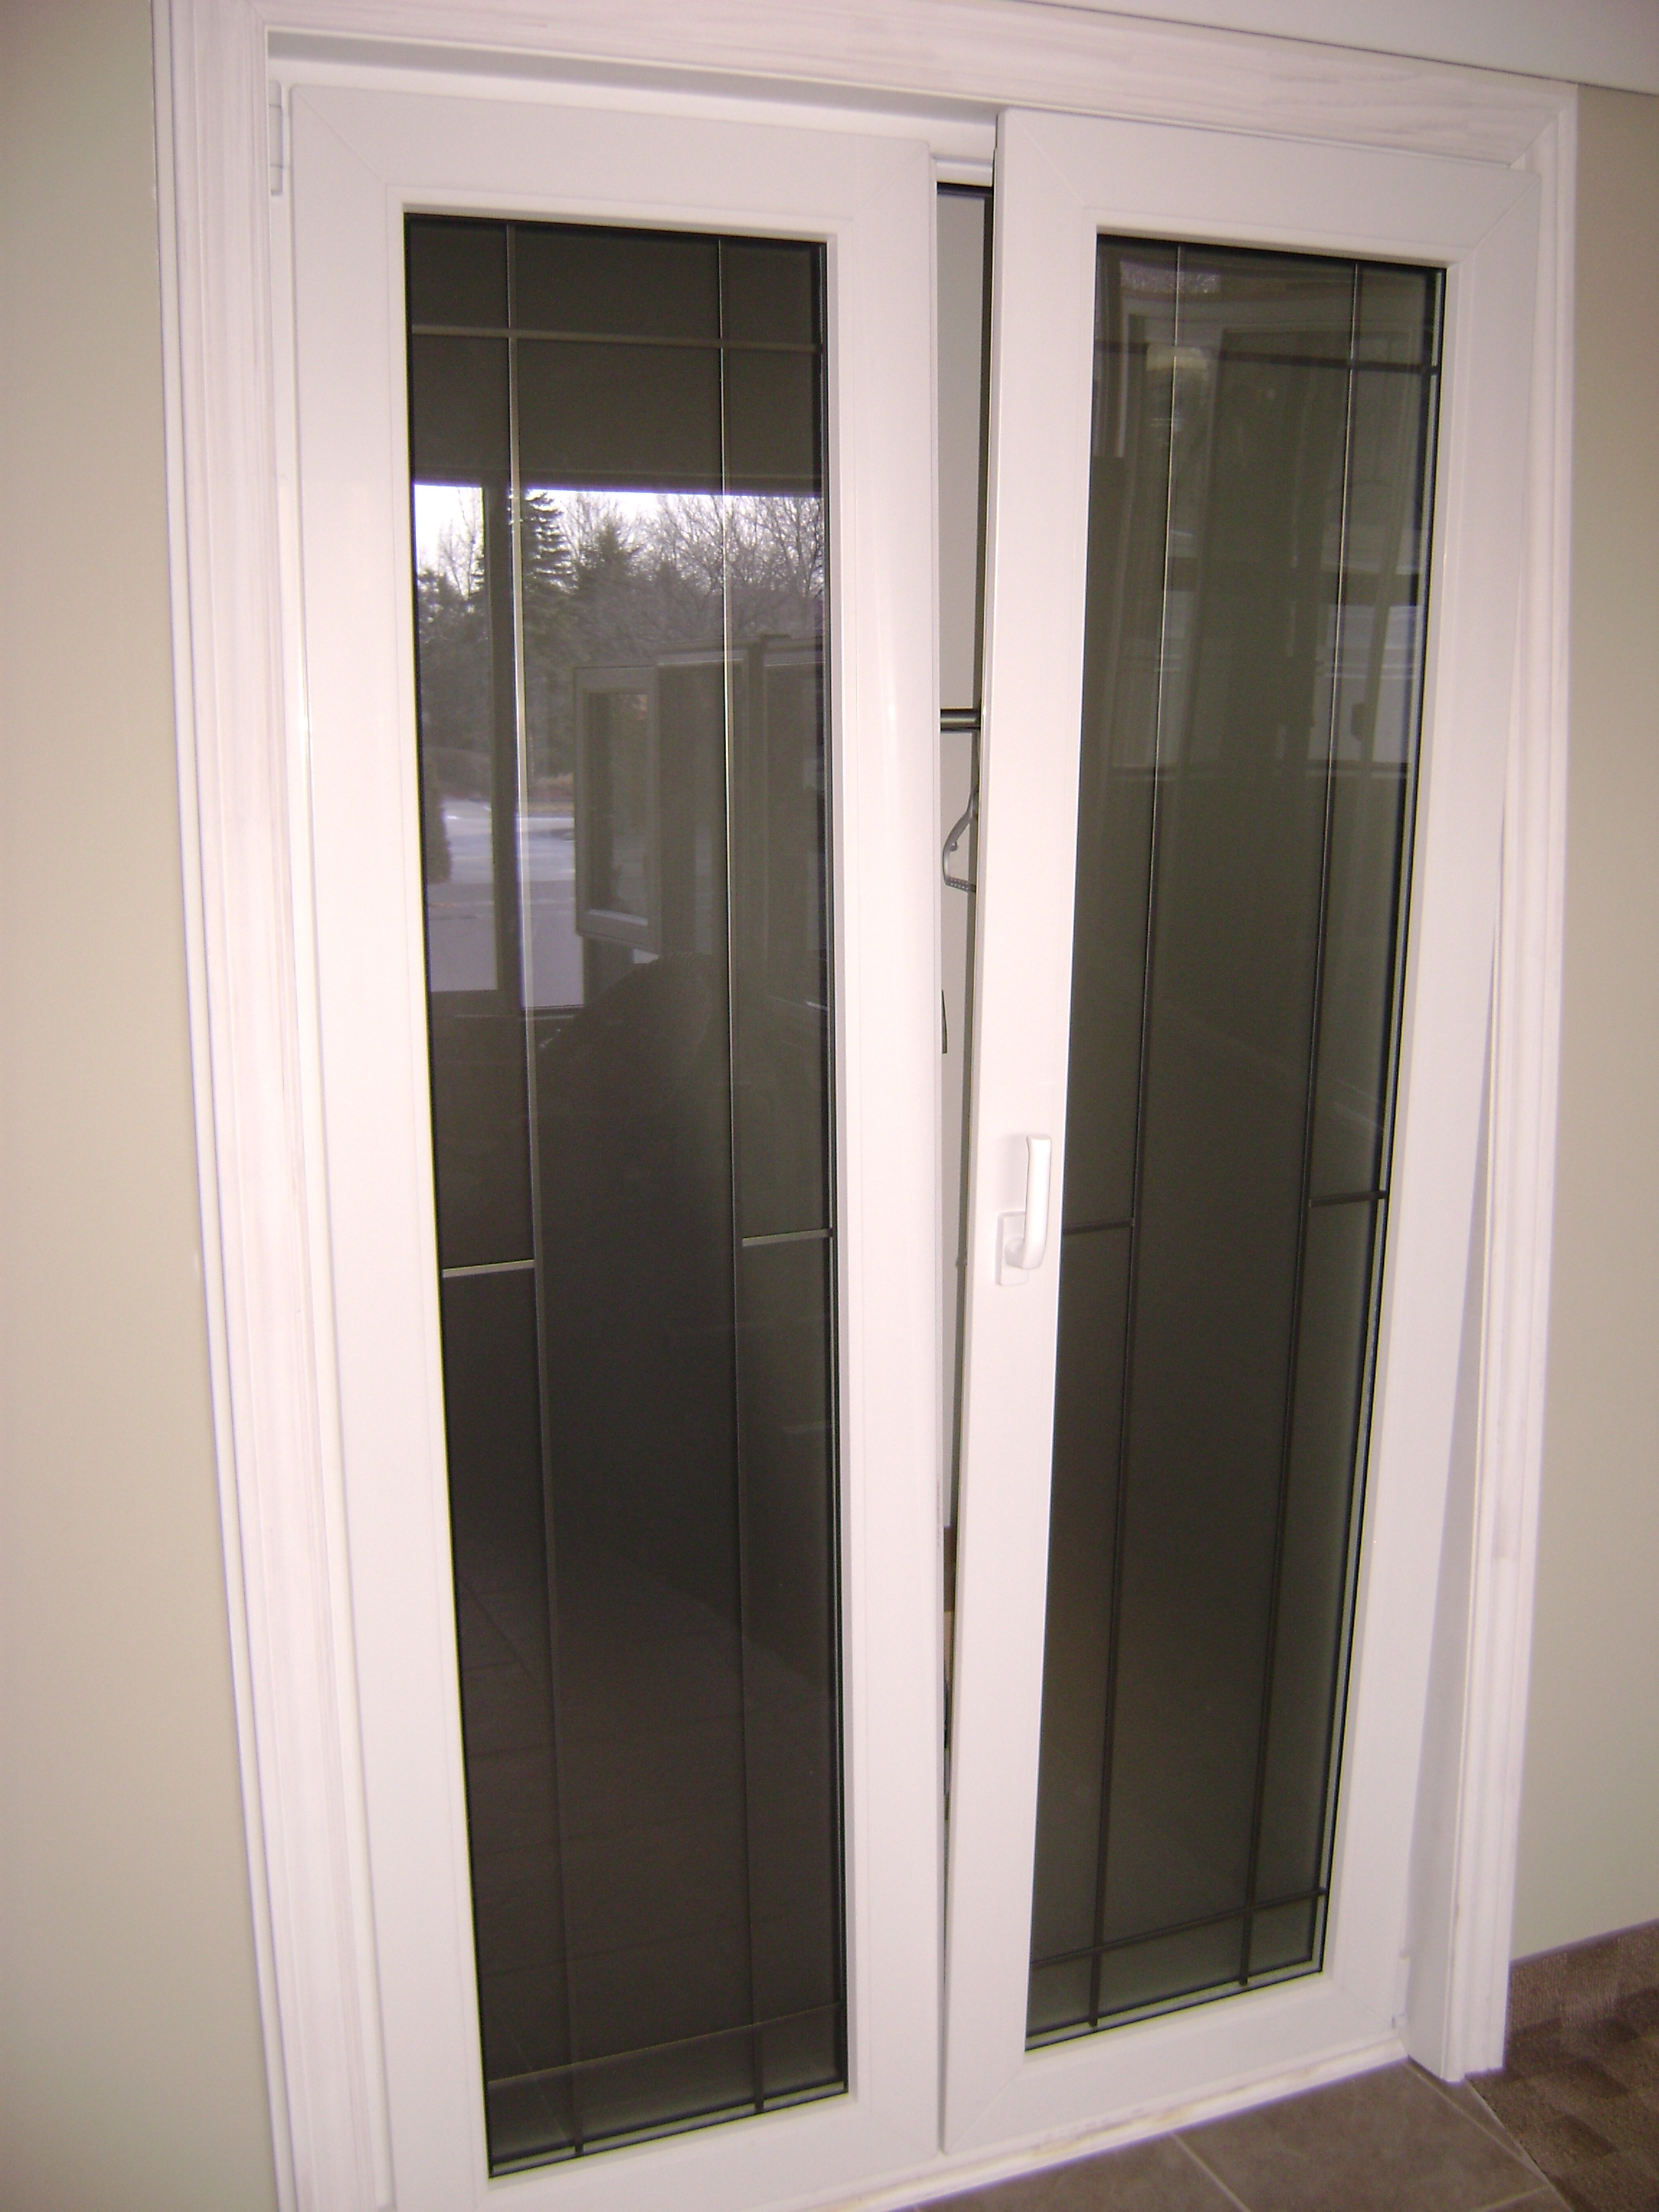 French doors garden doors mississauga french garden doors tilt turn french door rubansaba